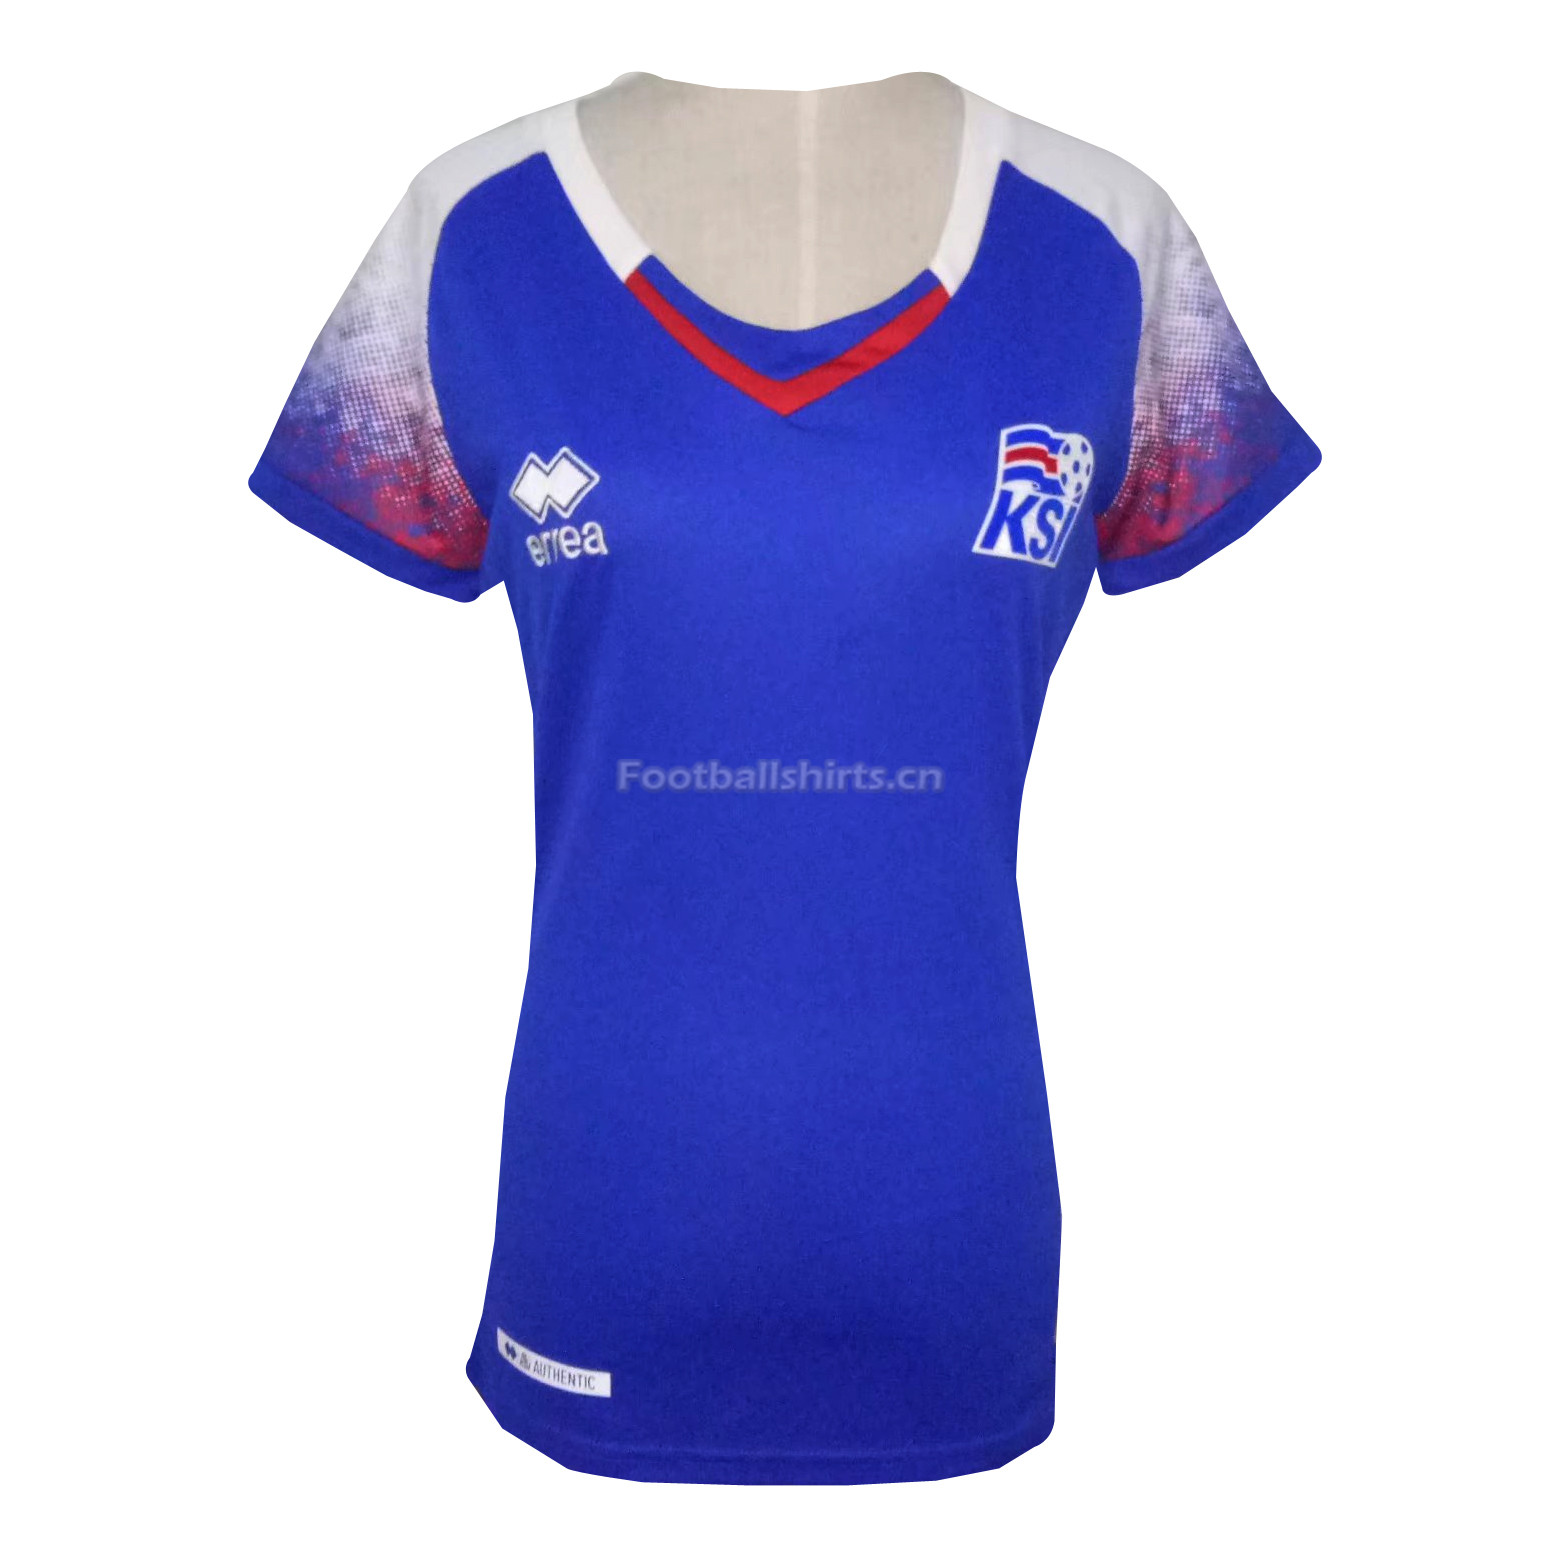 Iceland 2018 FIFA World Cup Women's Home Soccer Jersey Blue